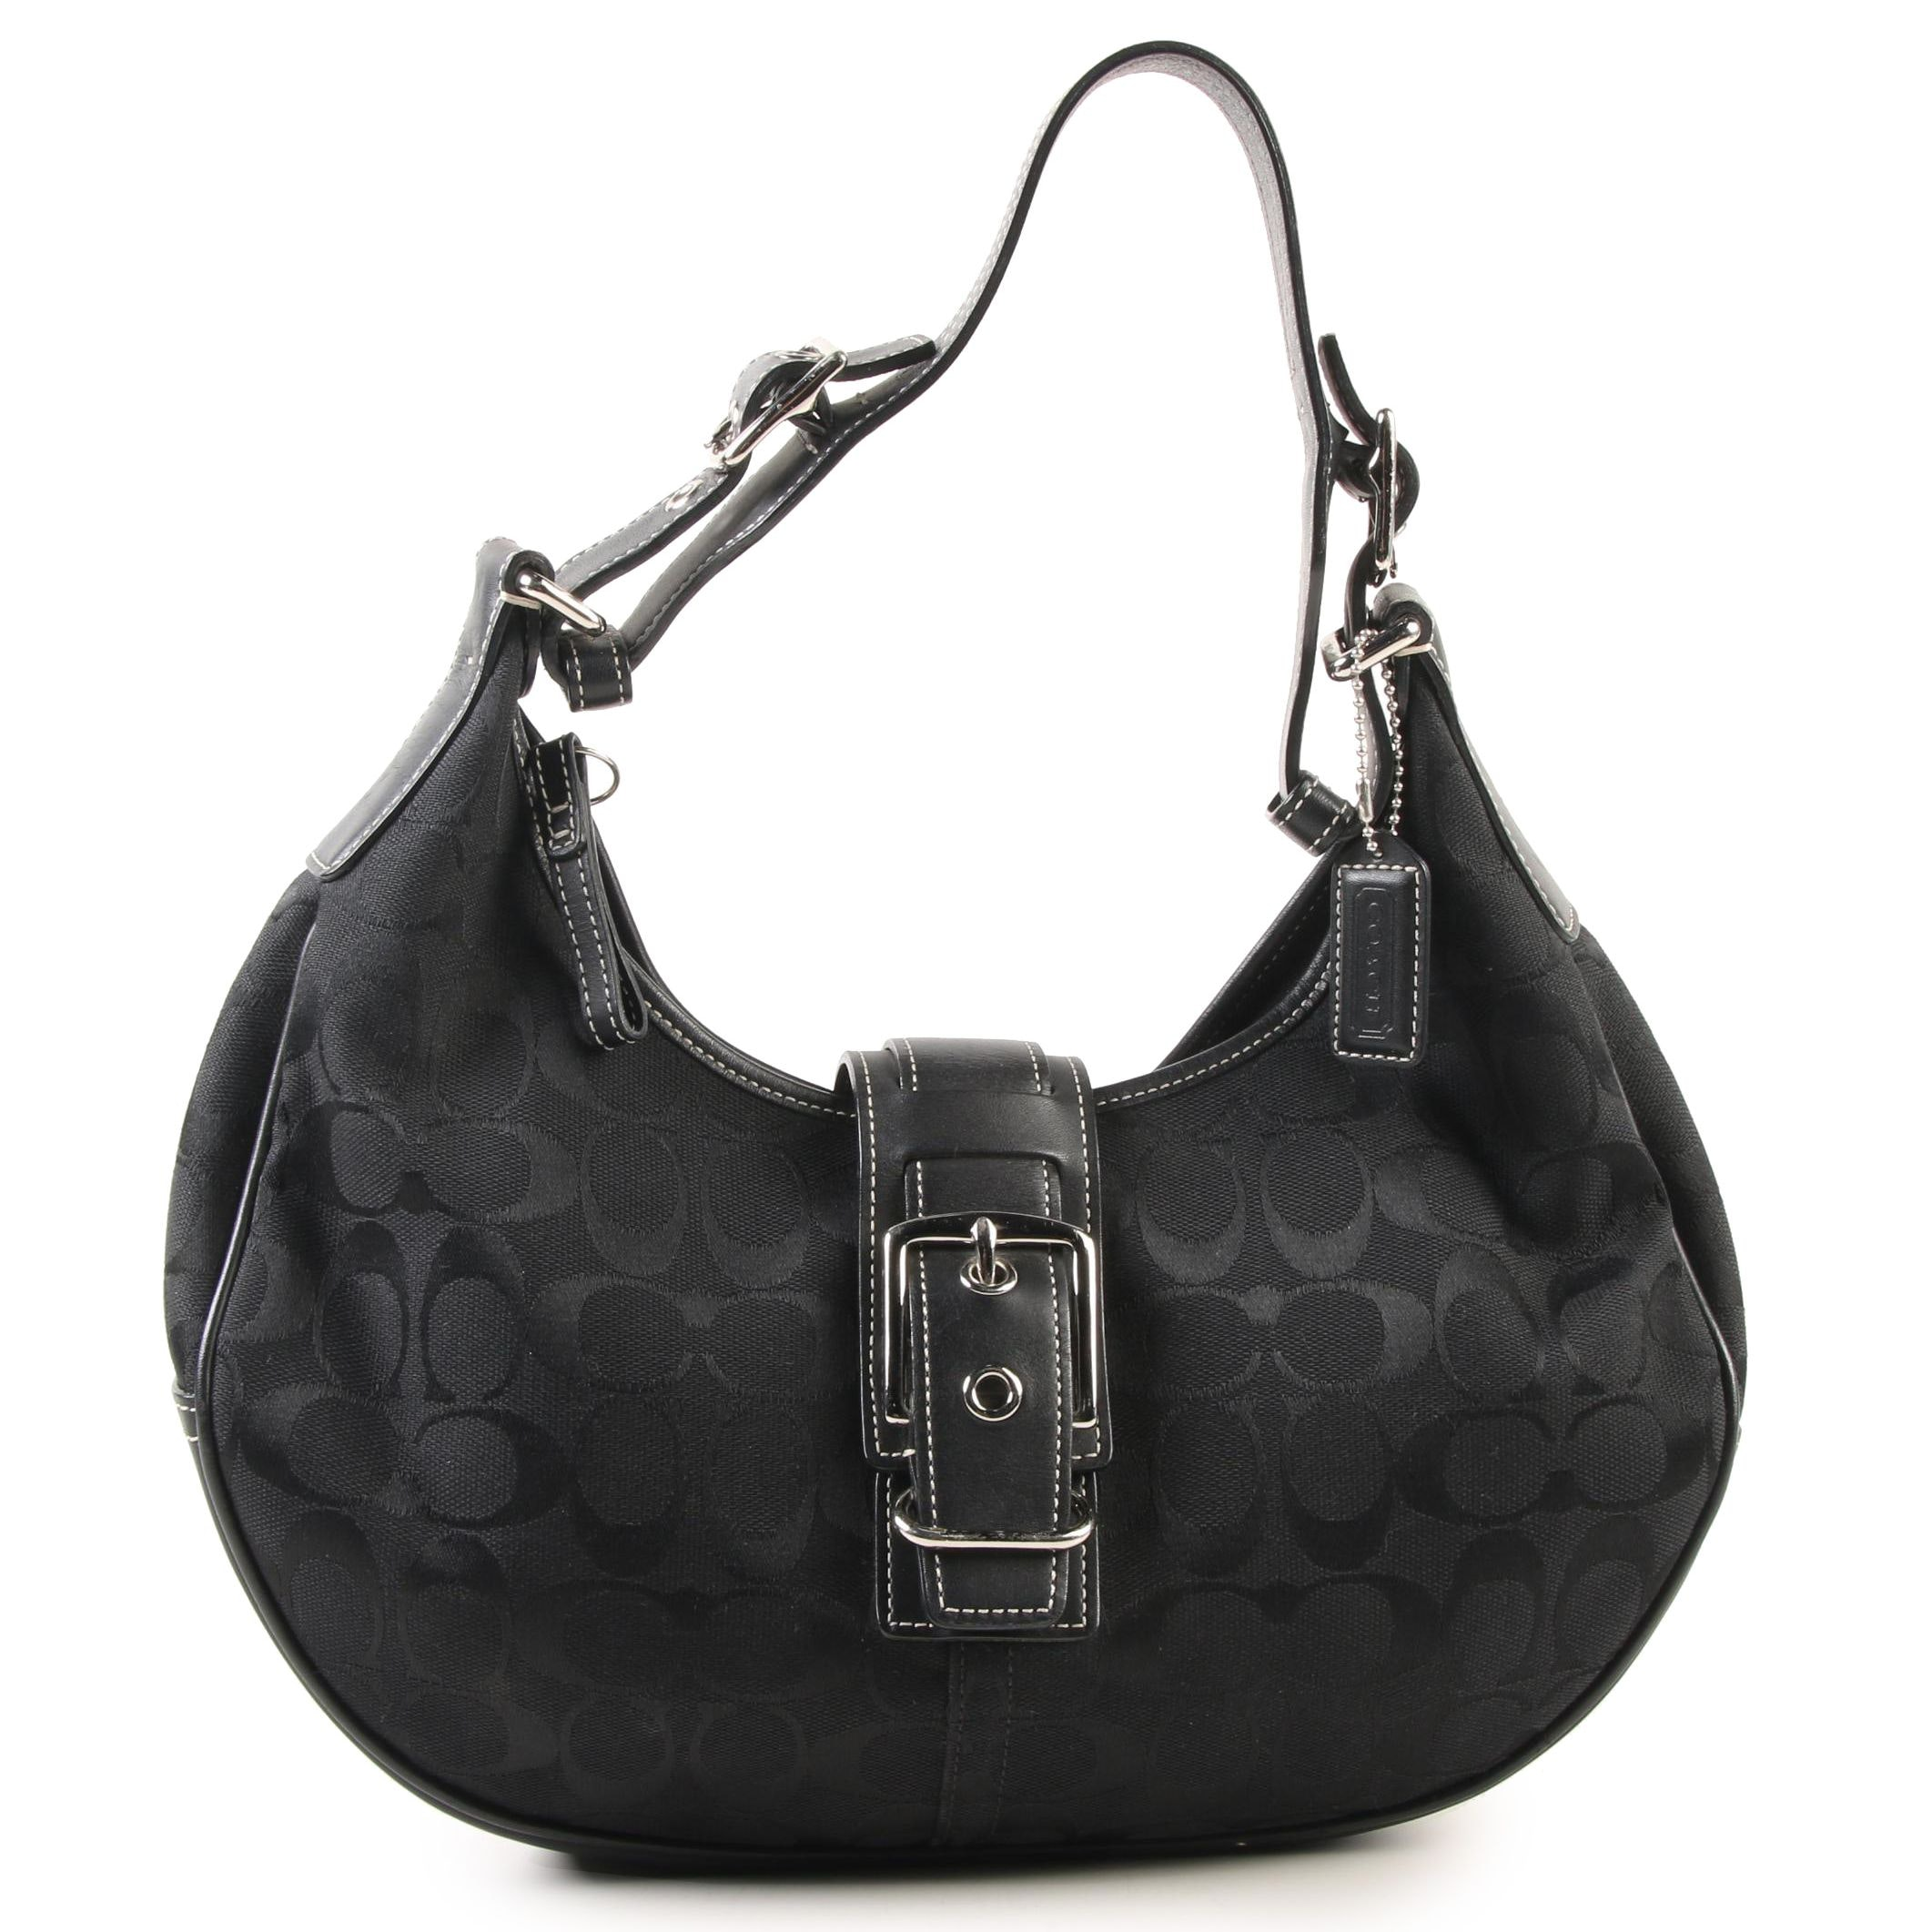 Coach Soho Buckle Hobo Bag in Black Jacquard Monogram Canvas and Leather